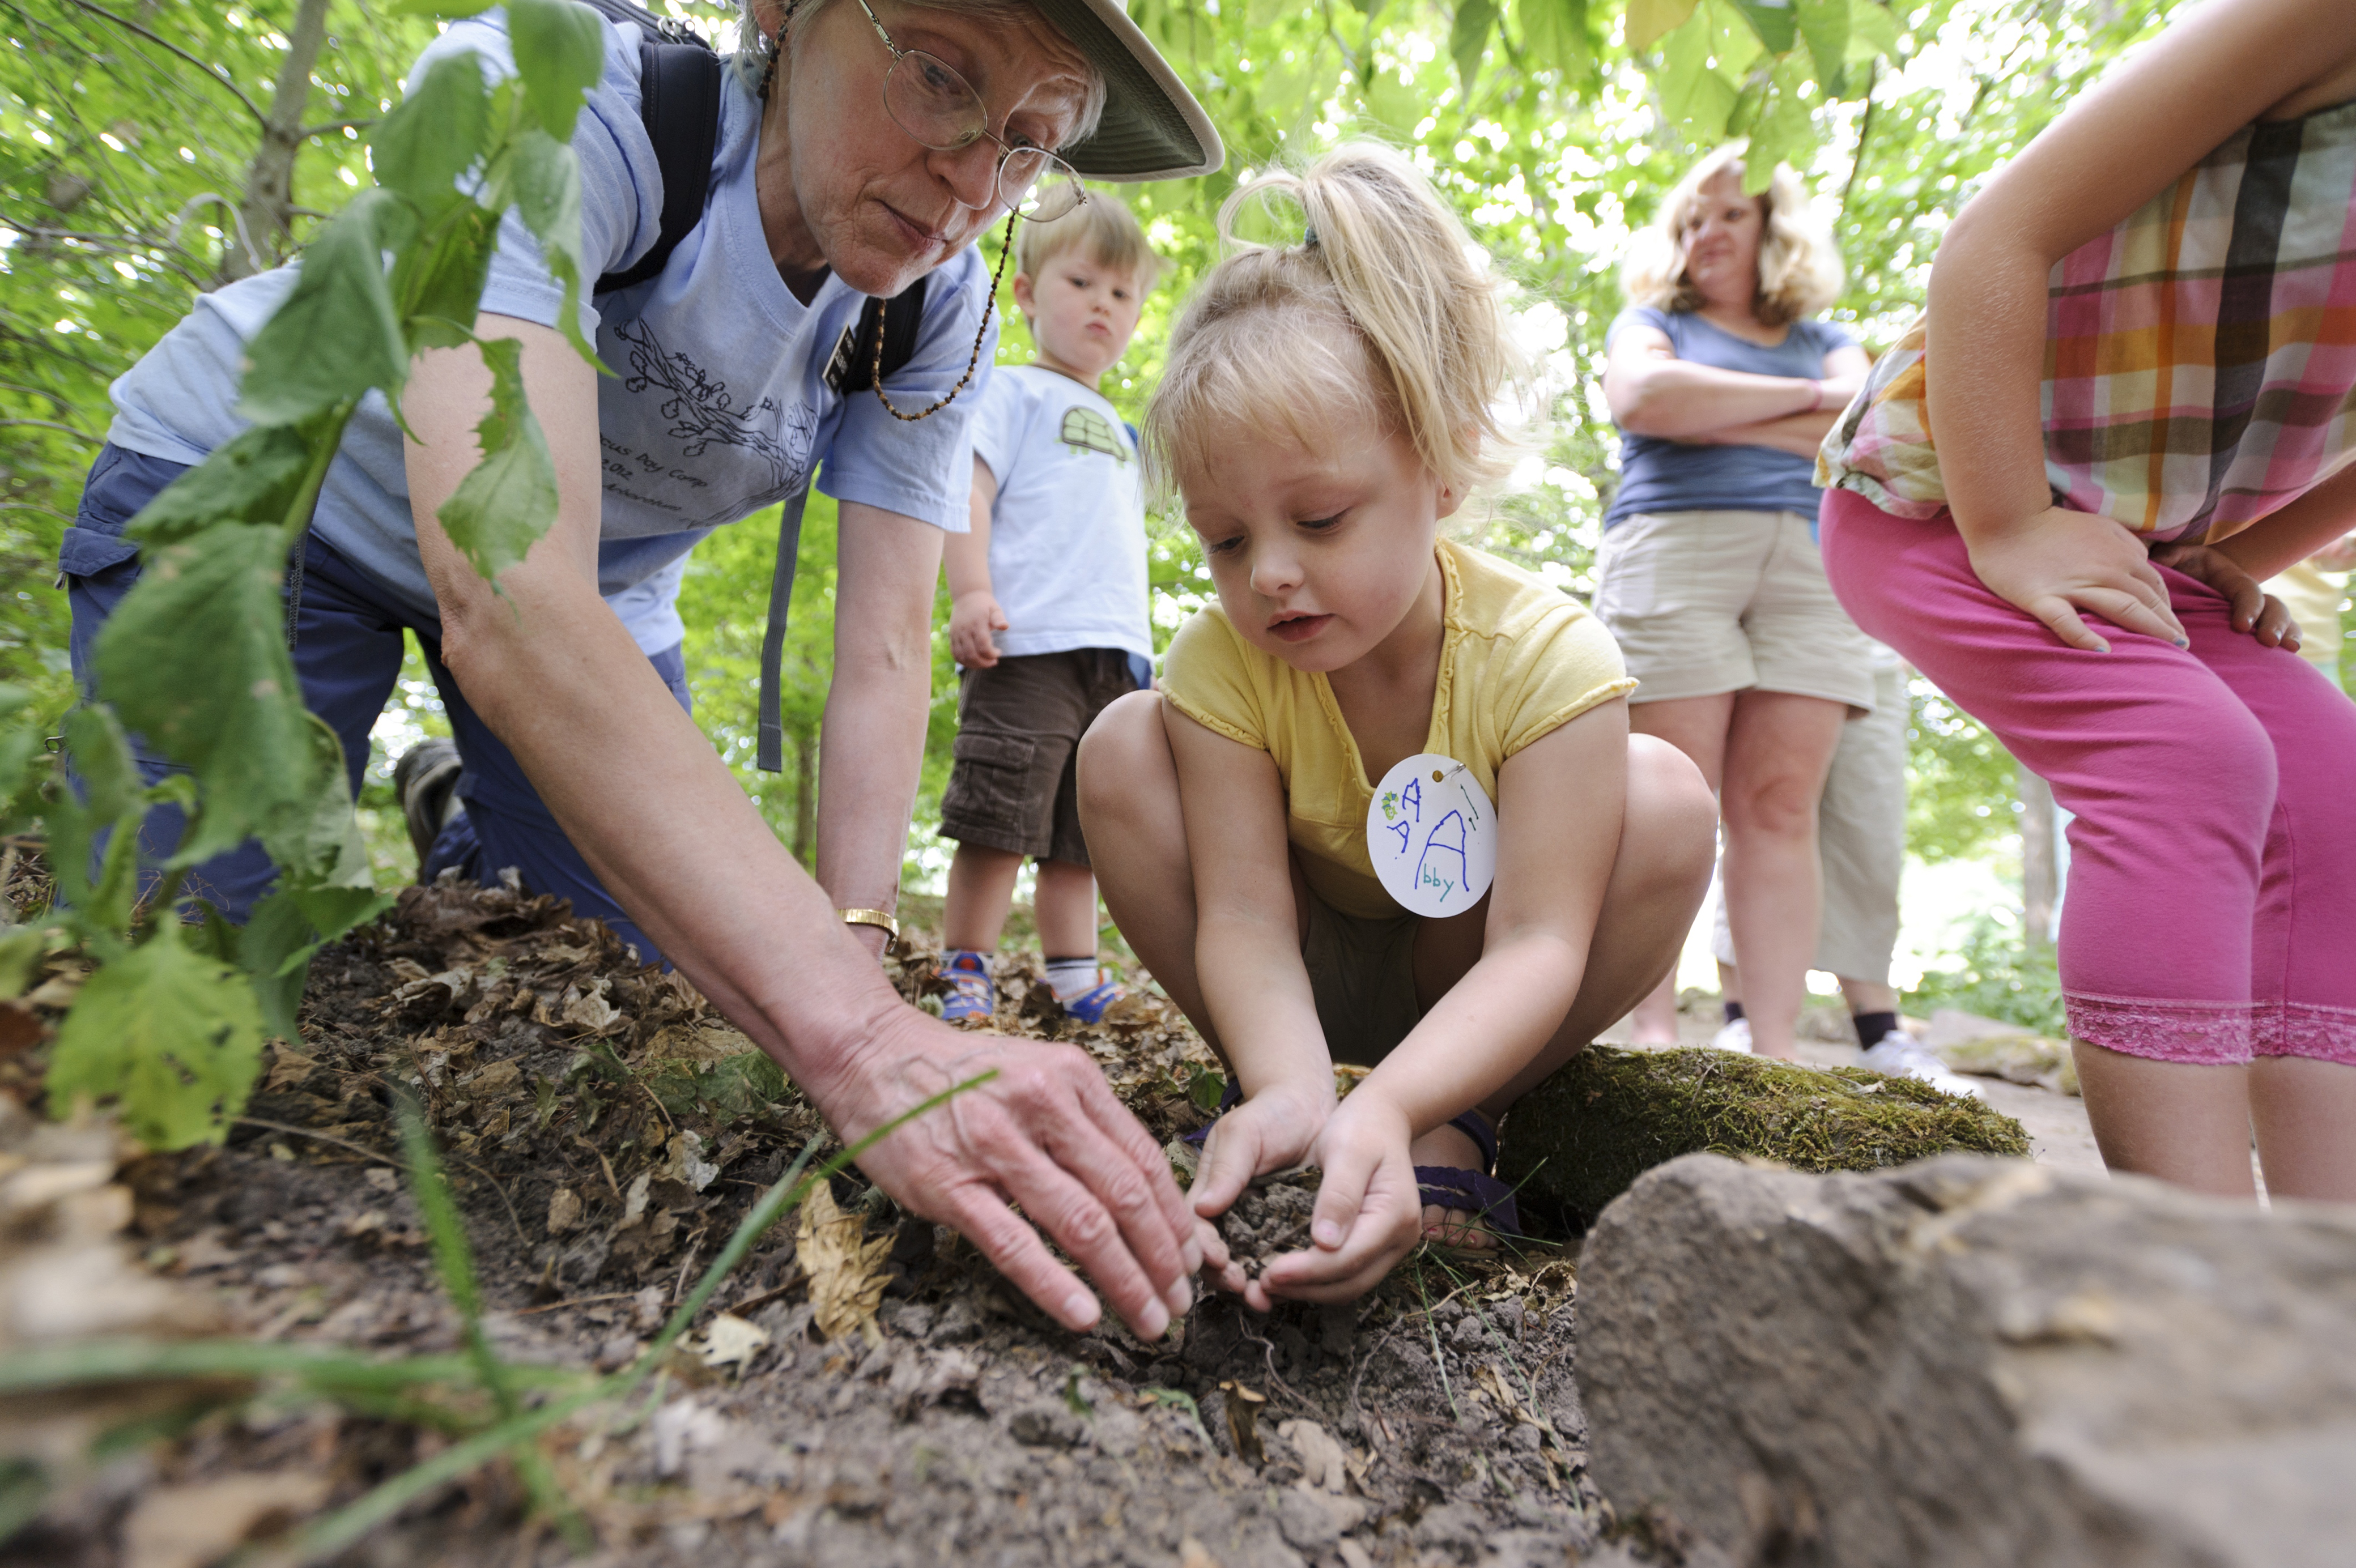 Lady helping a little girl plant a tree